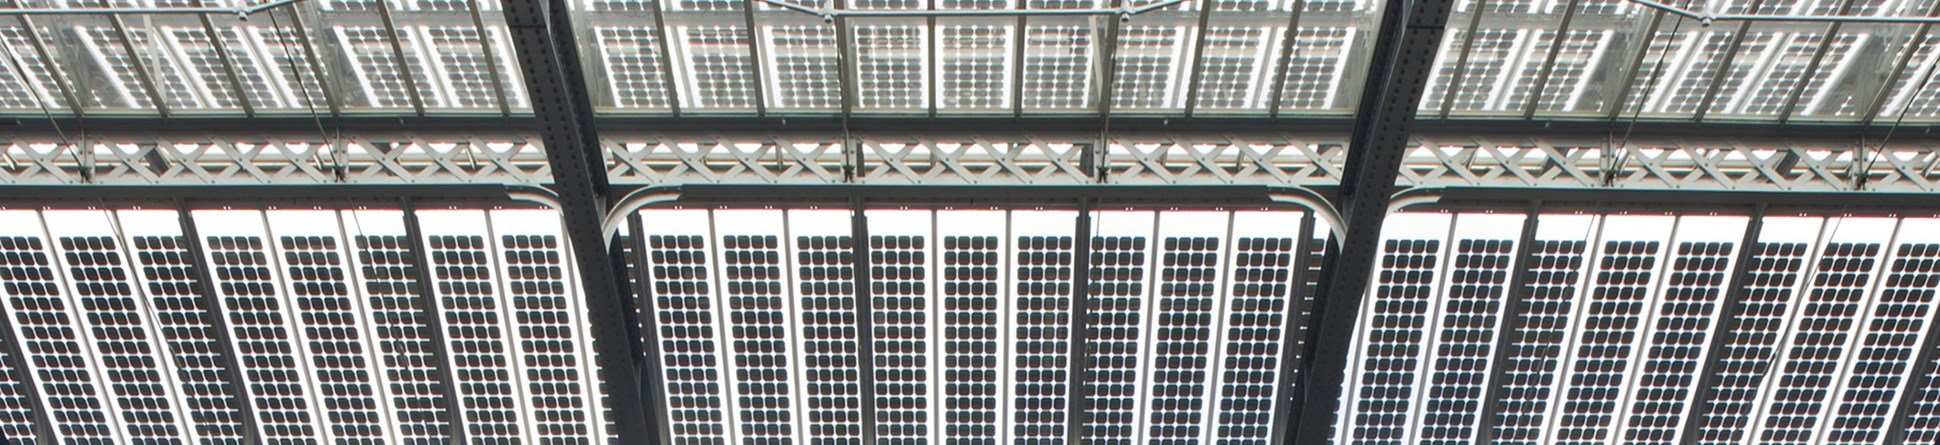 glass laminate rooftop showing photovoltaic cells